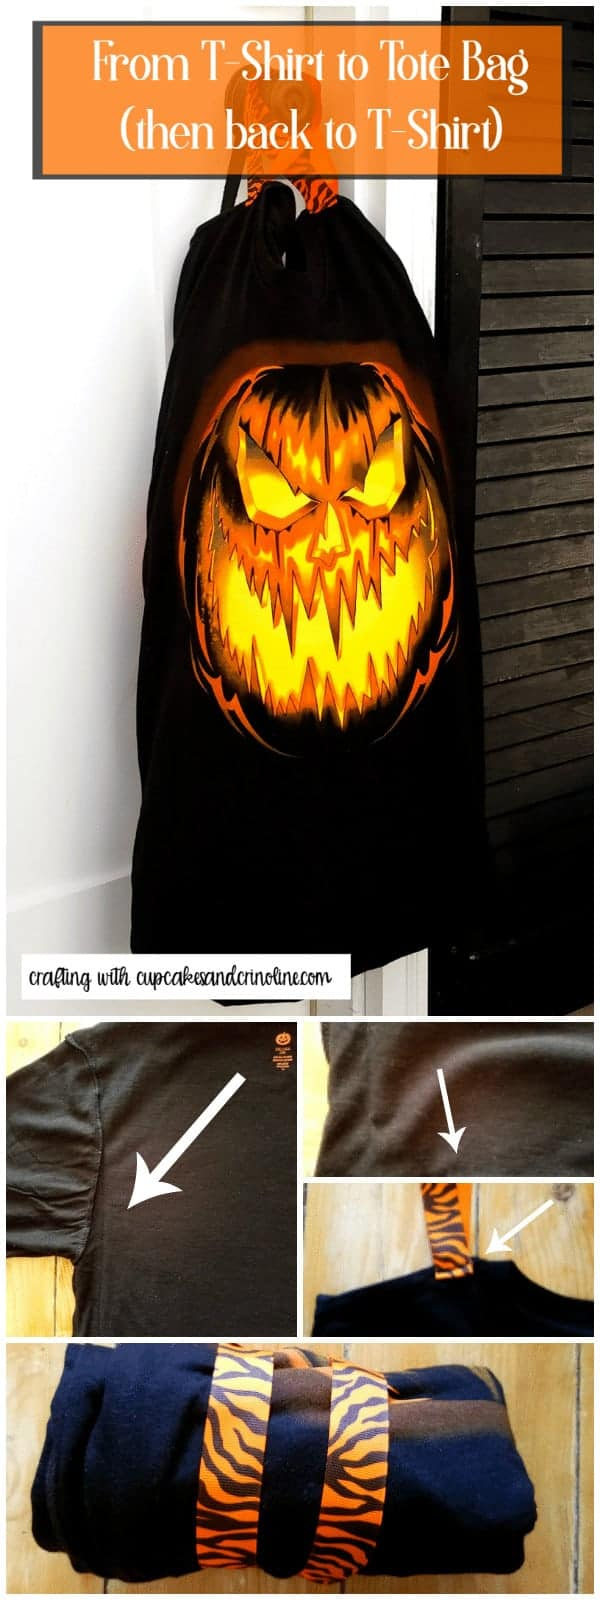 from-t-shirt-to-tote-bag-then-back-to-t-shirt-halloween-tote-bag-tutorial-from-www-cupcakesandcrinoline-com